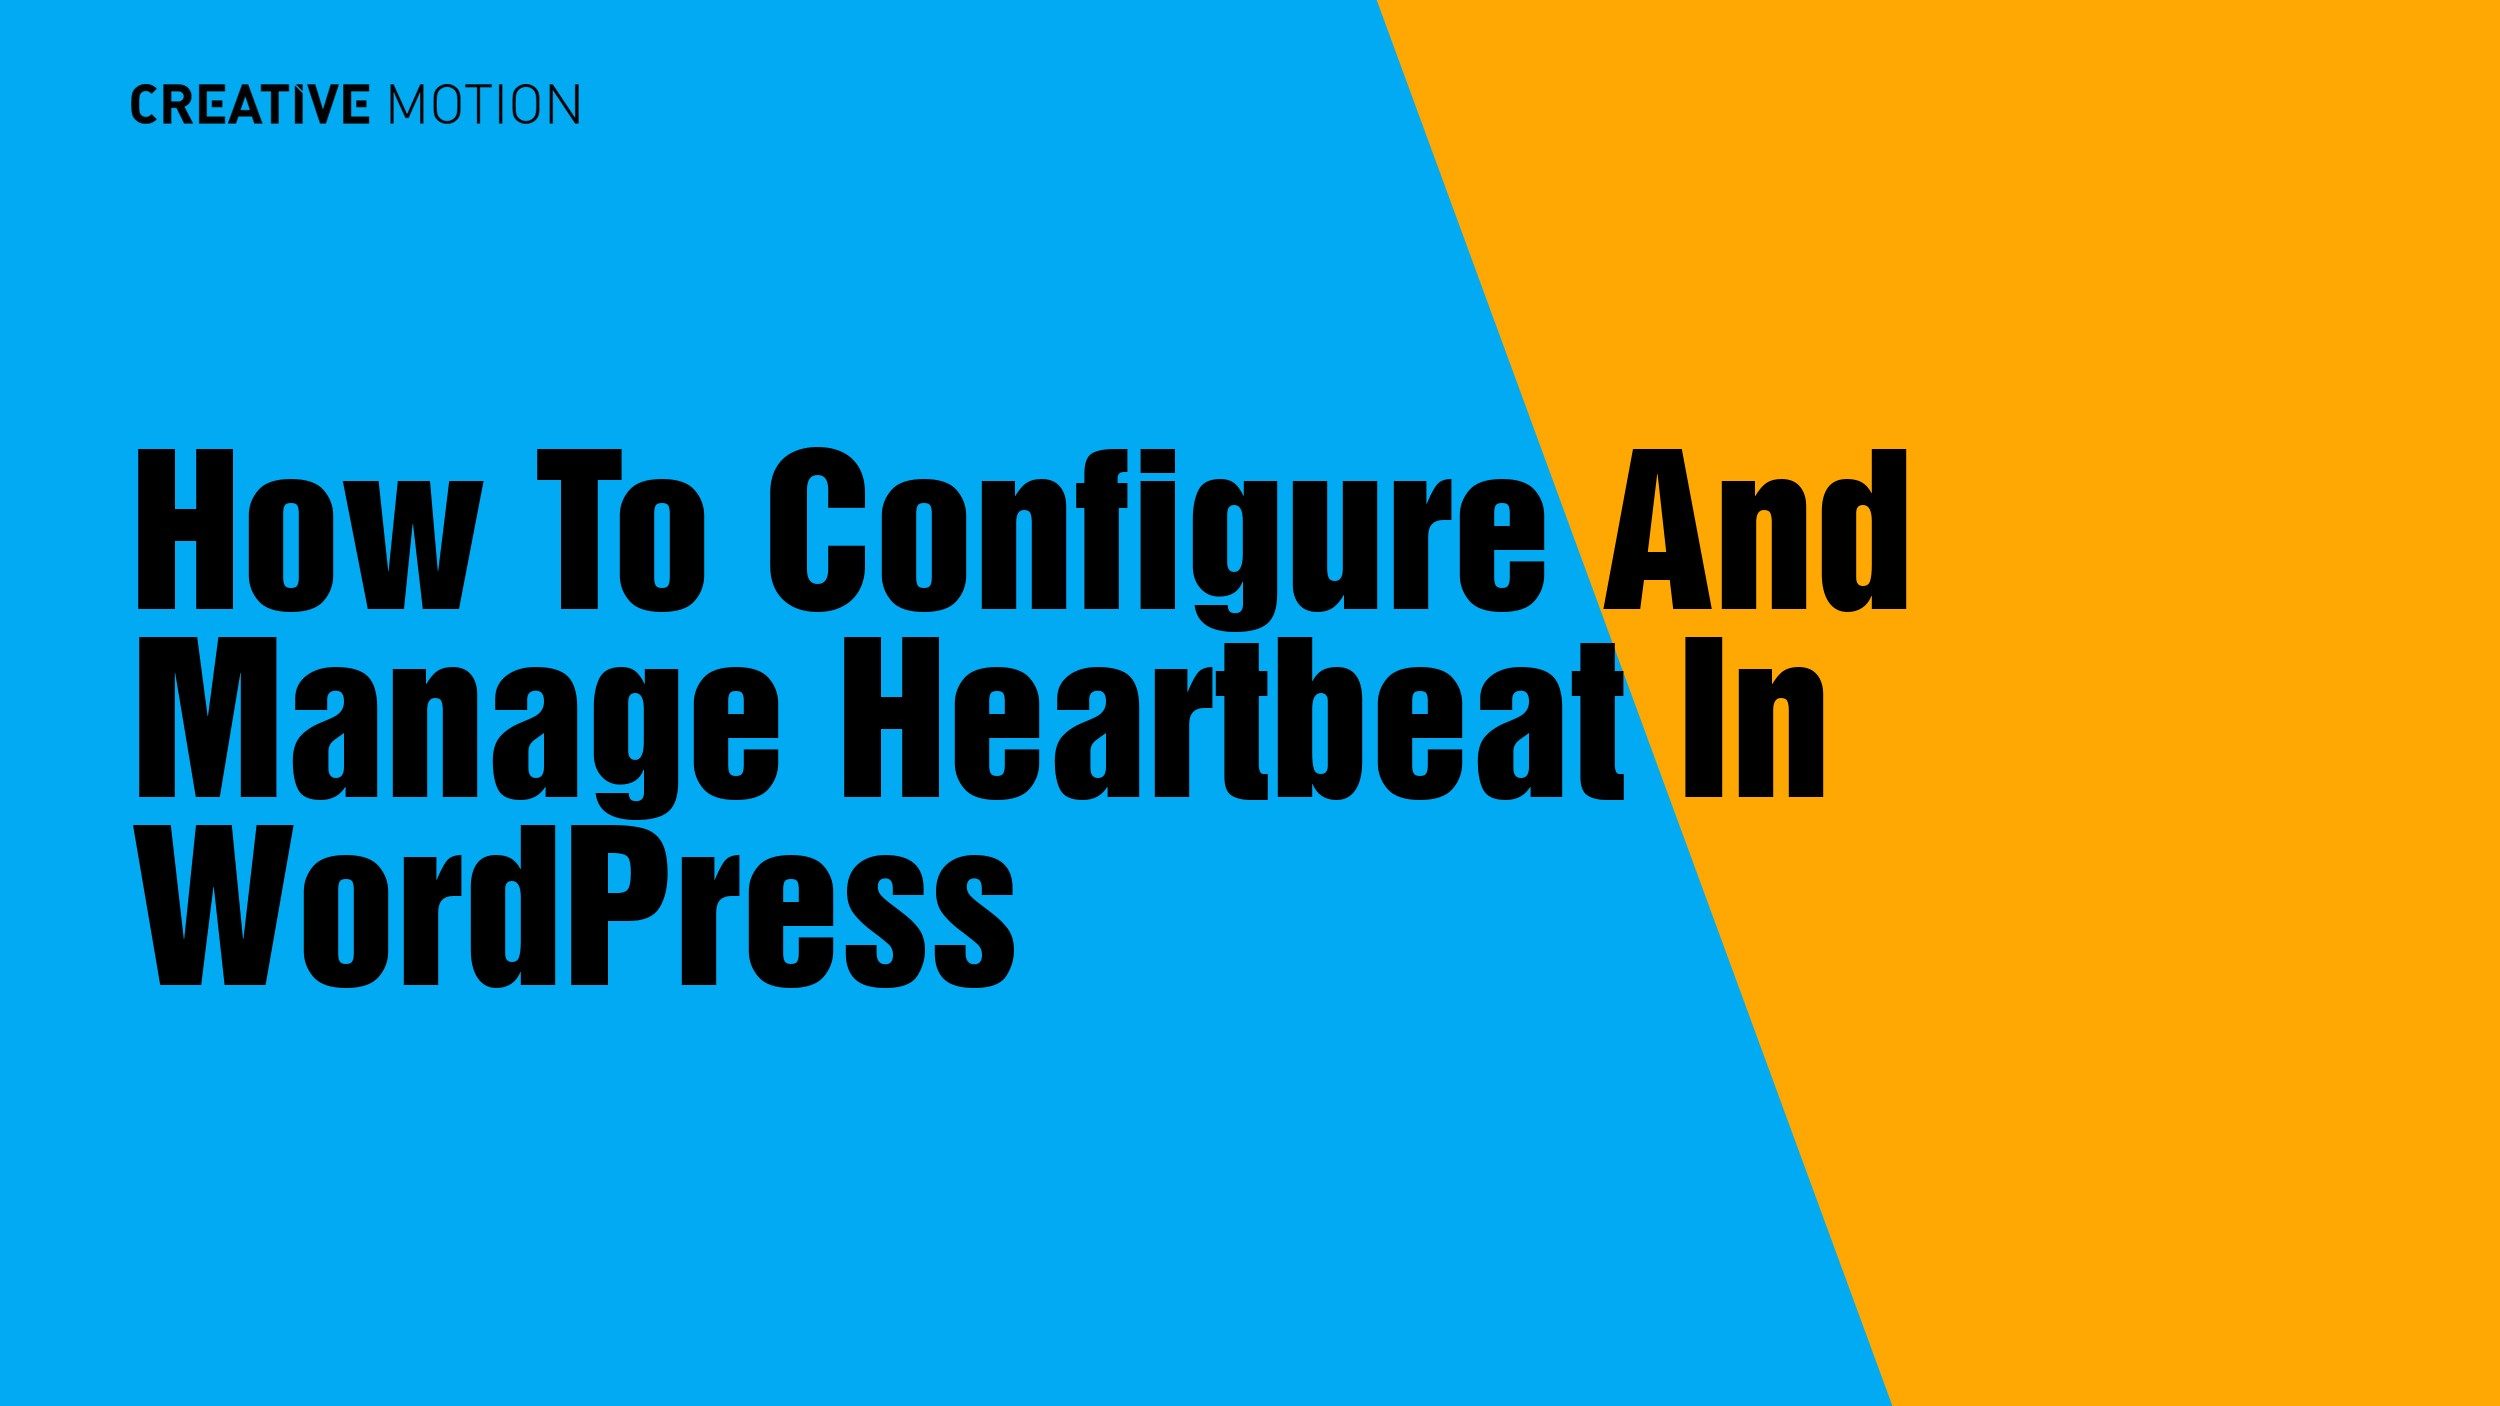 How To Configure And Manage Heartbeat In WordPress